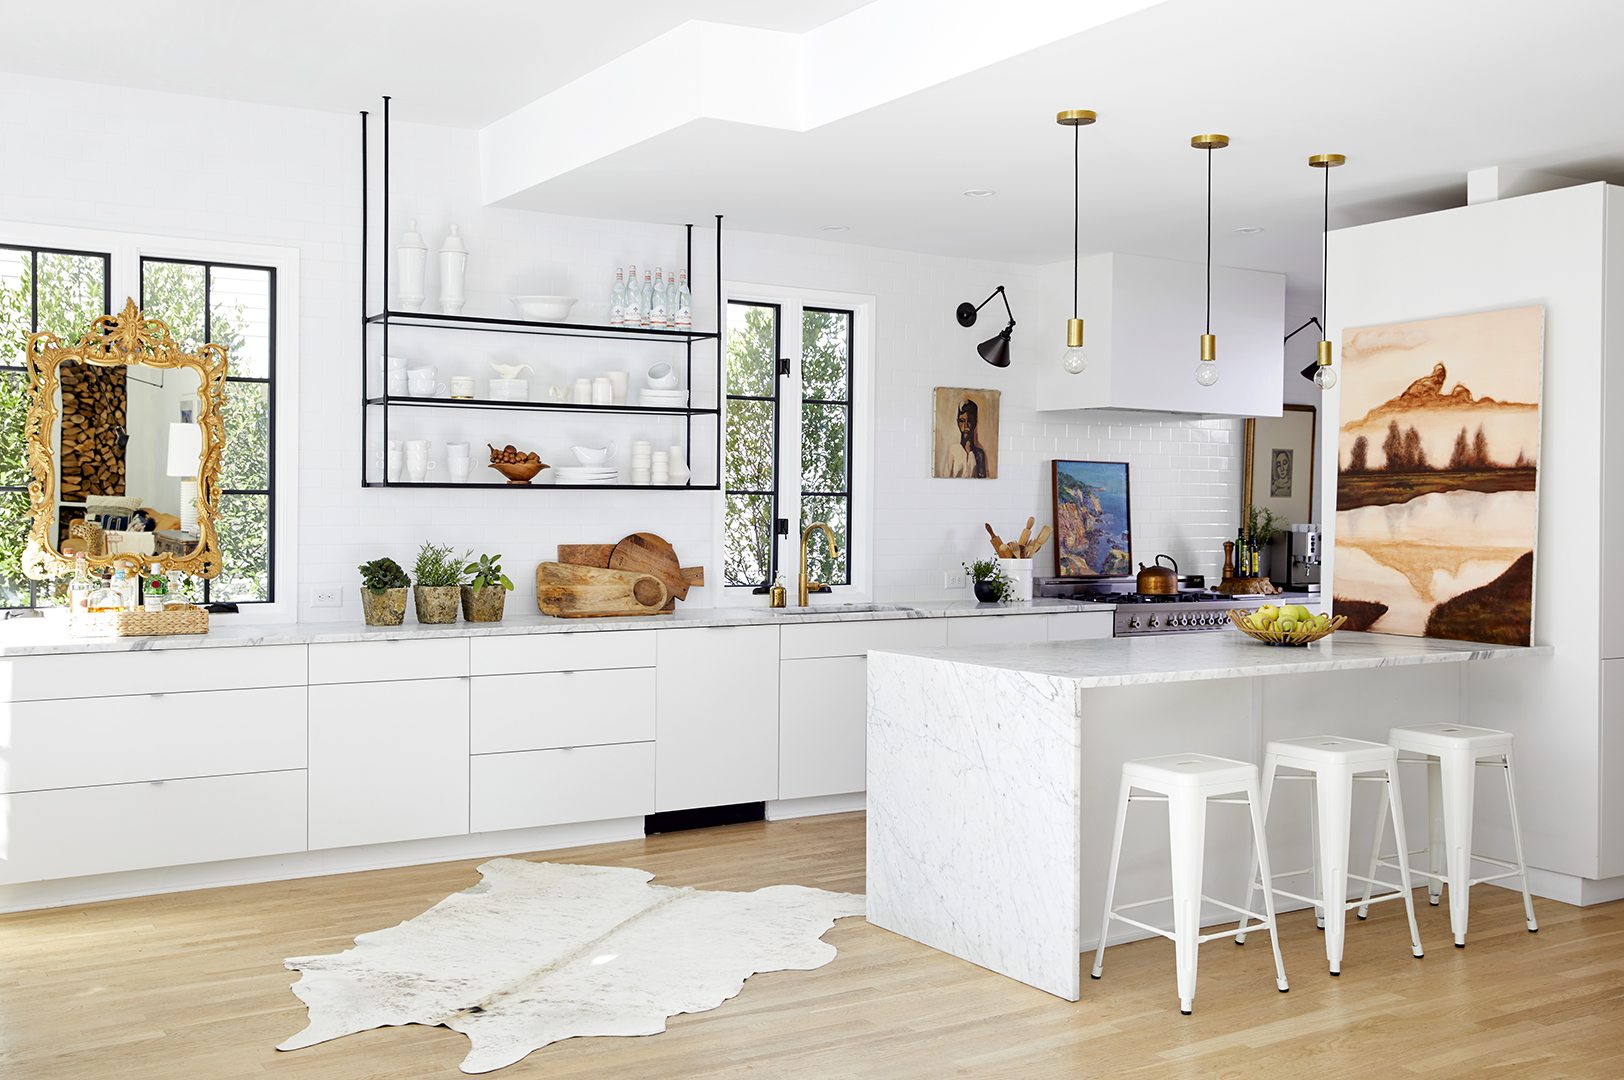 open-white-kitchen-with-steel-shelves-9d848c3f.jpg